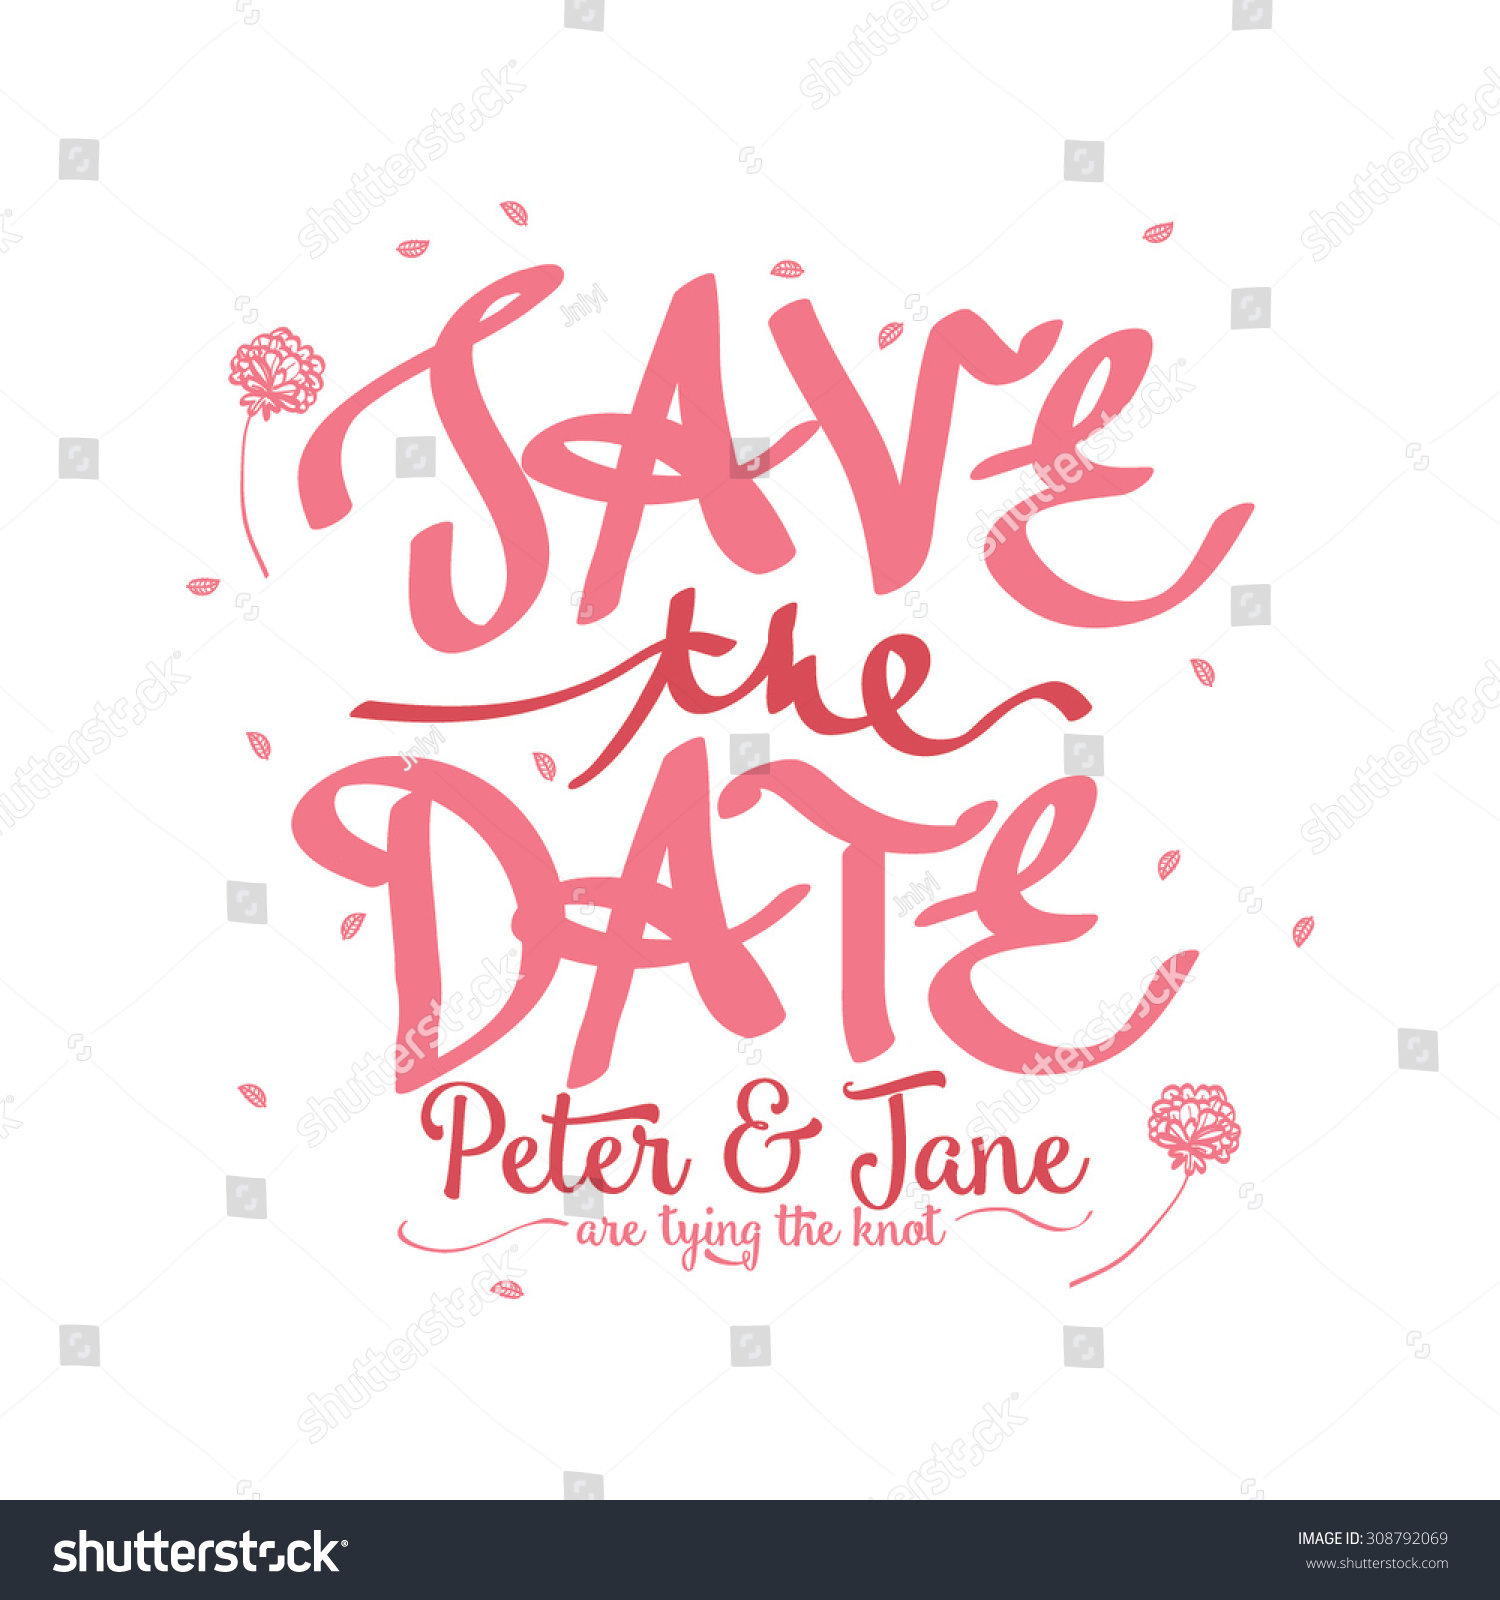 Wedding Invitation Card Designvintage Wedding Theme Stock Photo ...